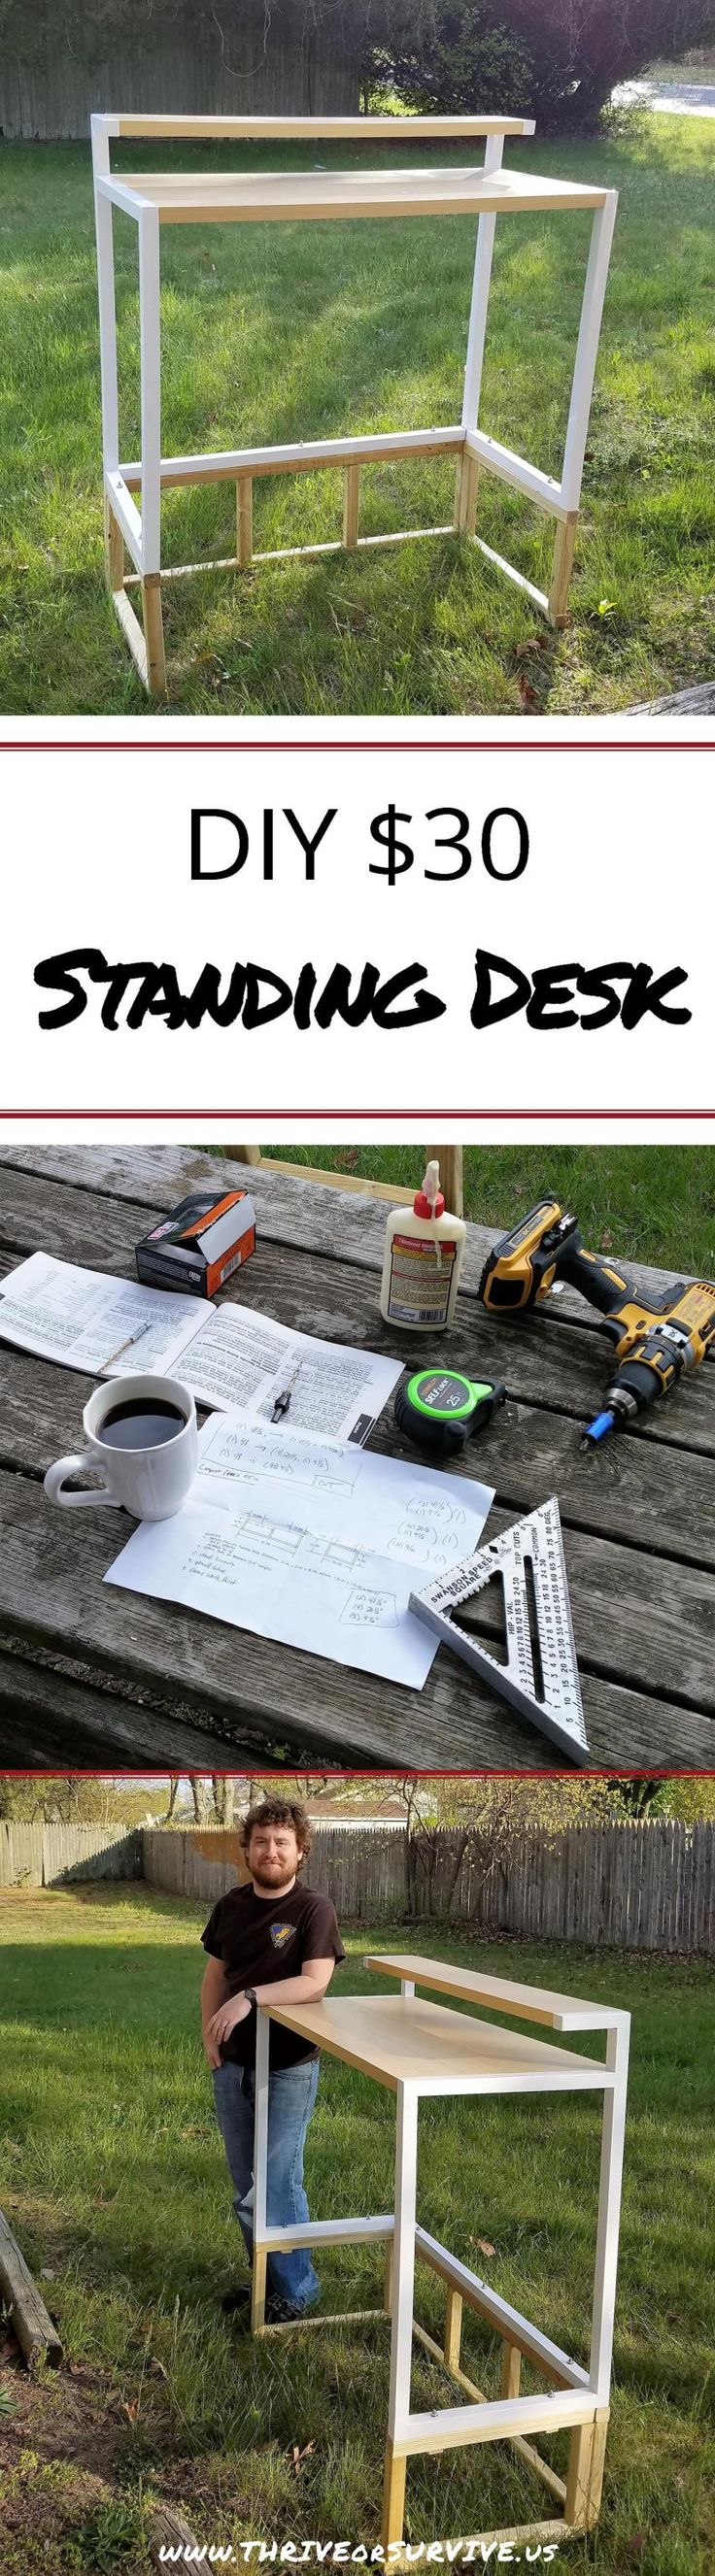 DIY Standing Desk Transformation- Only $30! @www.thriveorsurvive.us